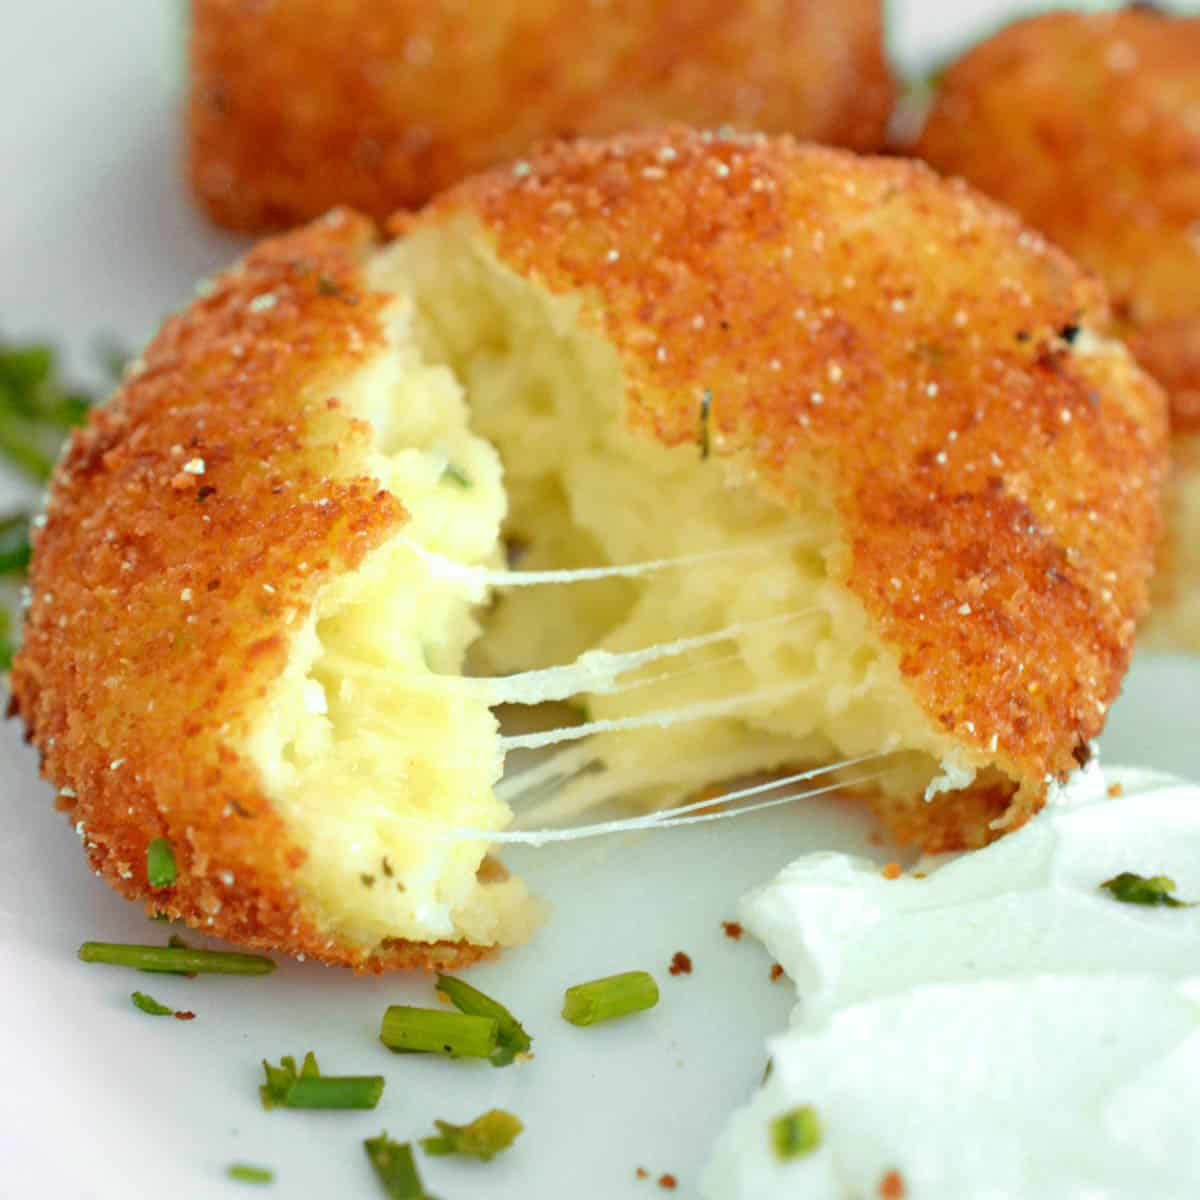 A croquette split open with stringy cheese.